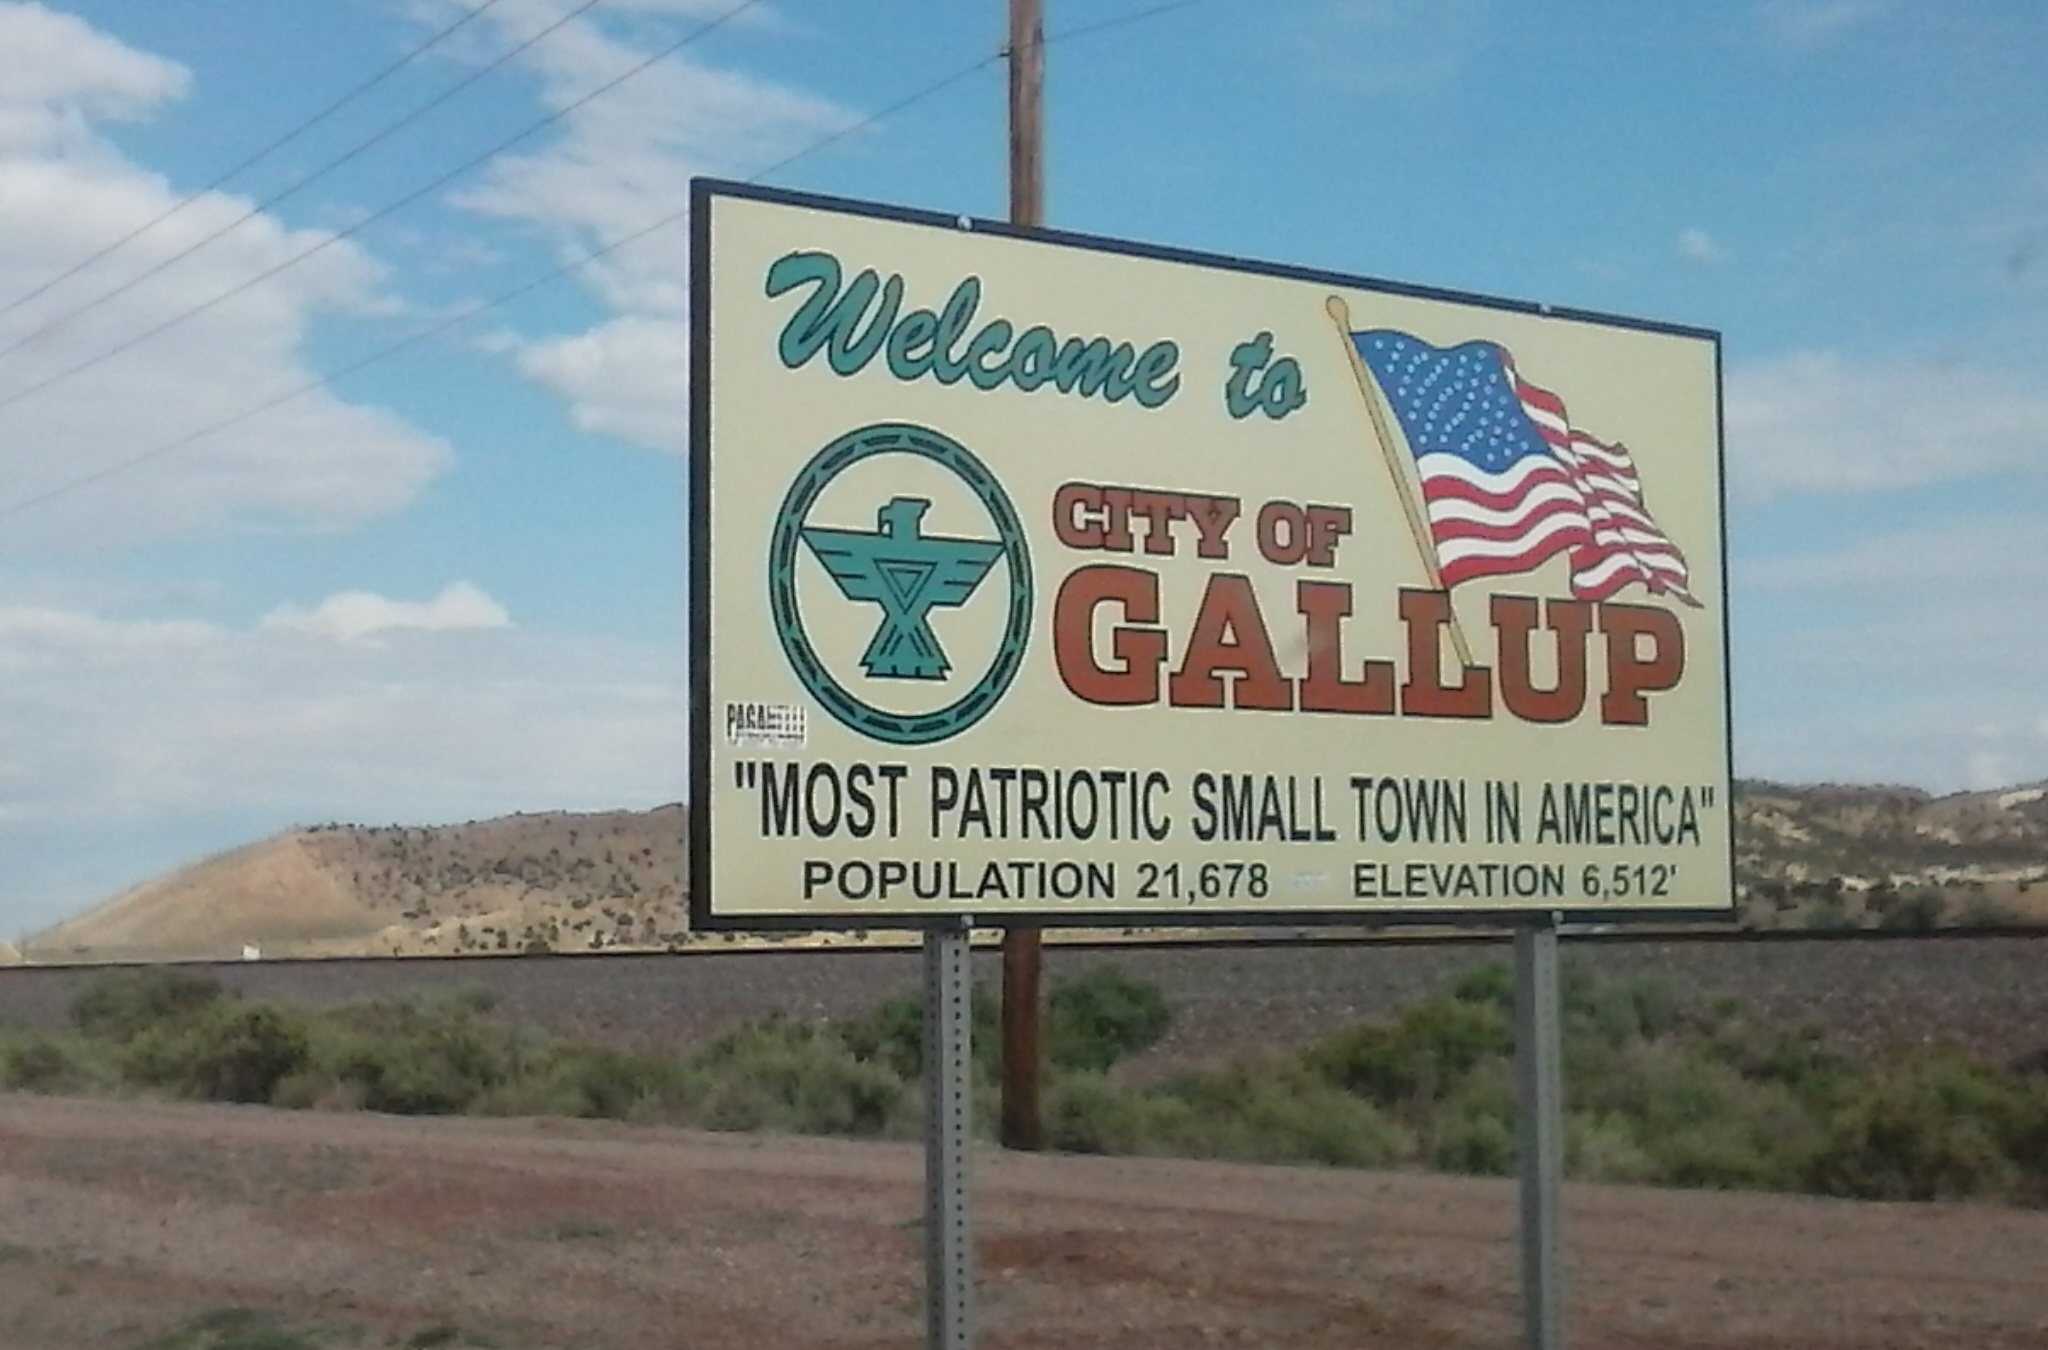 NMGallupWelcomeSign